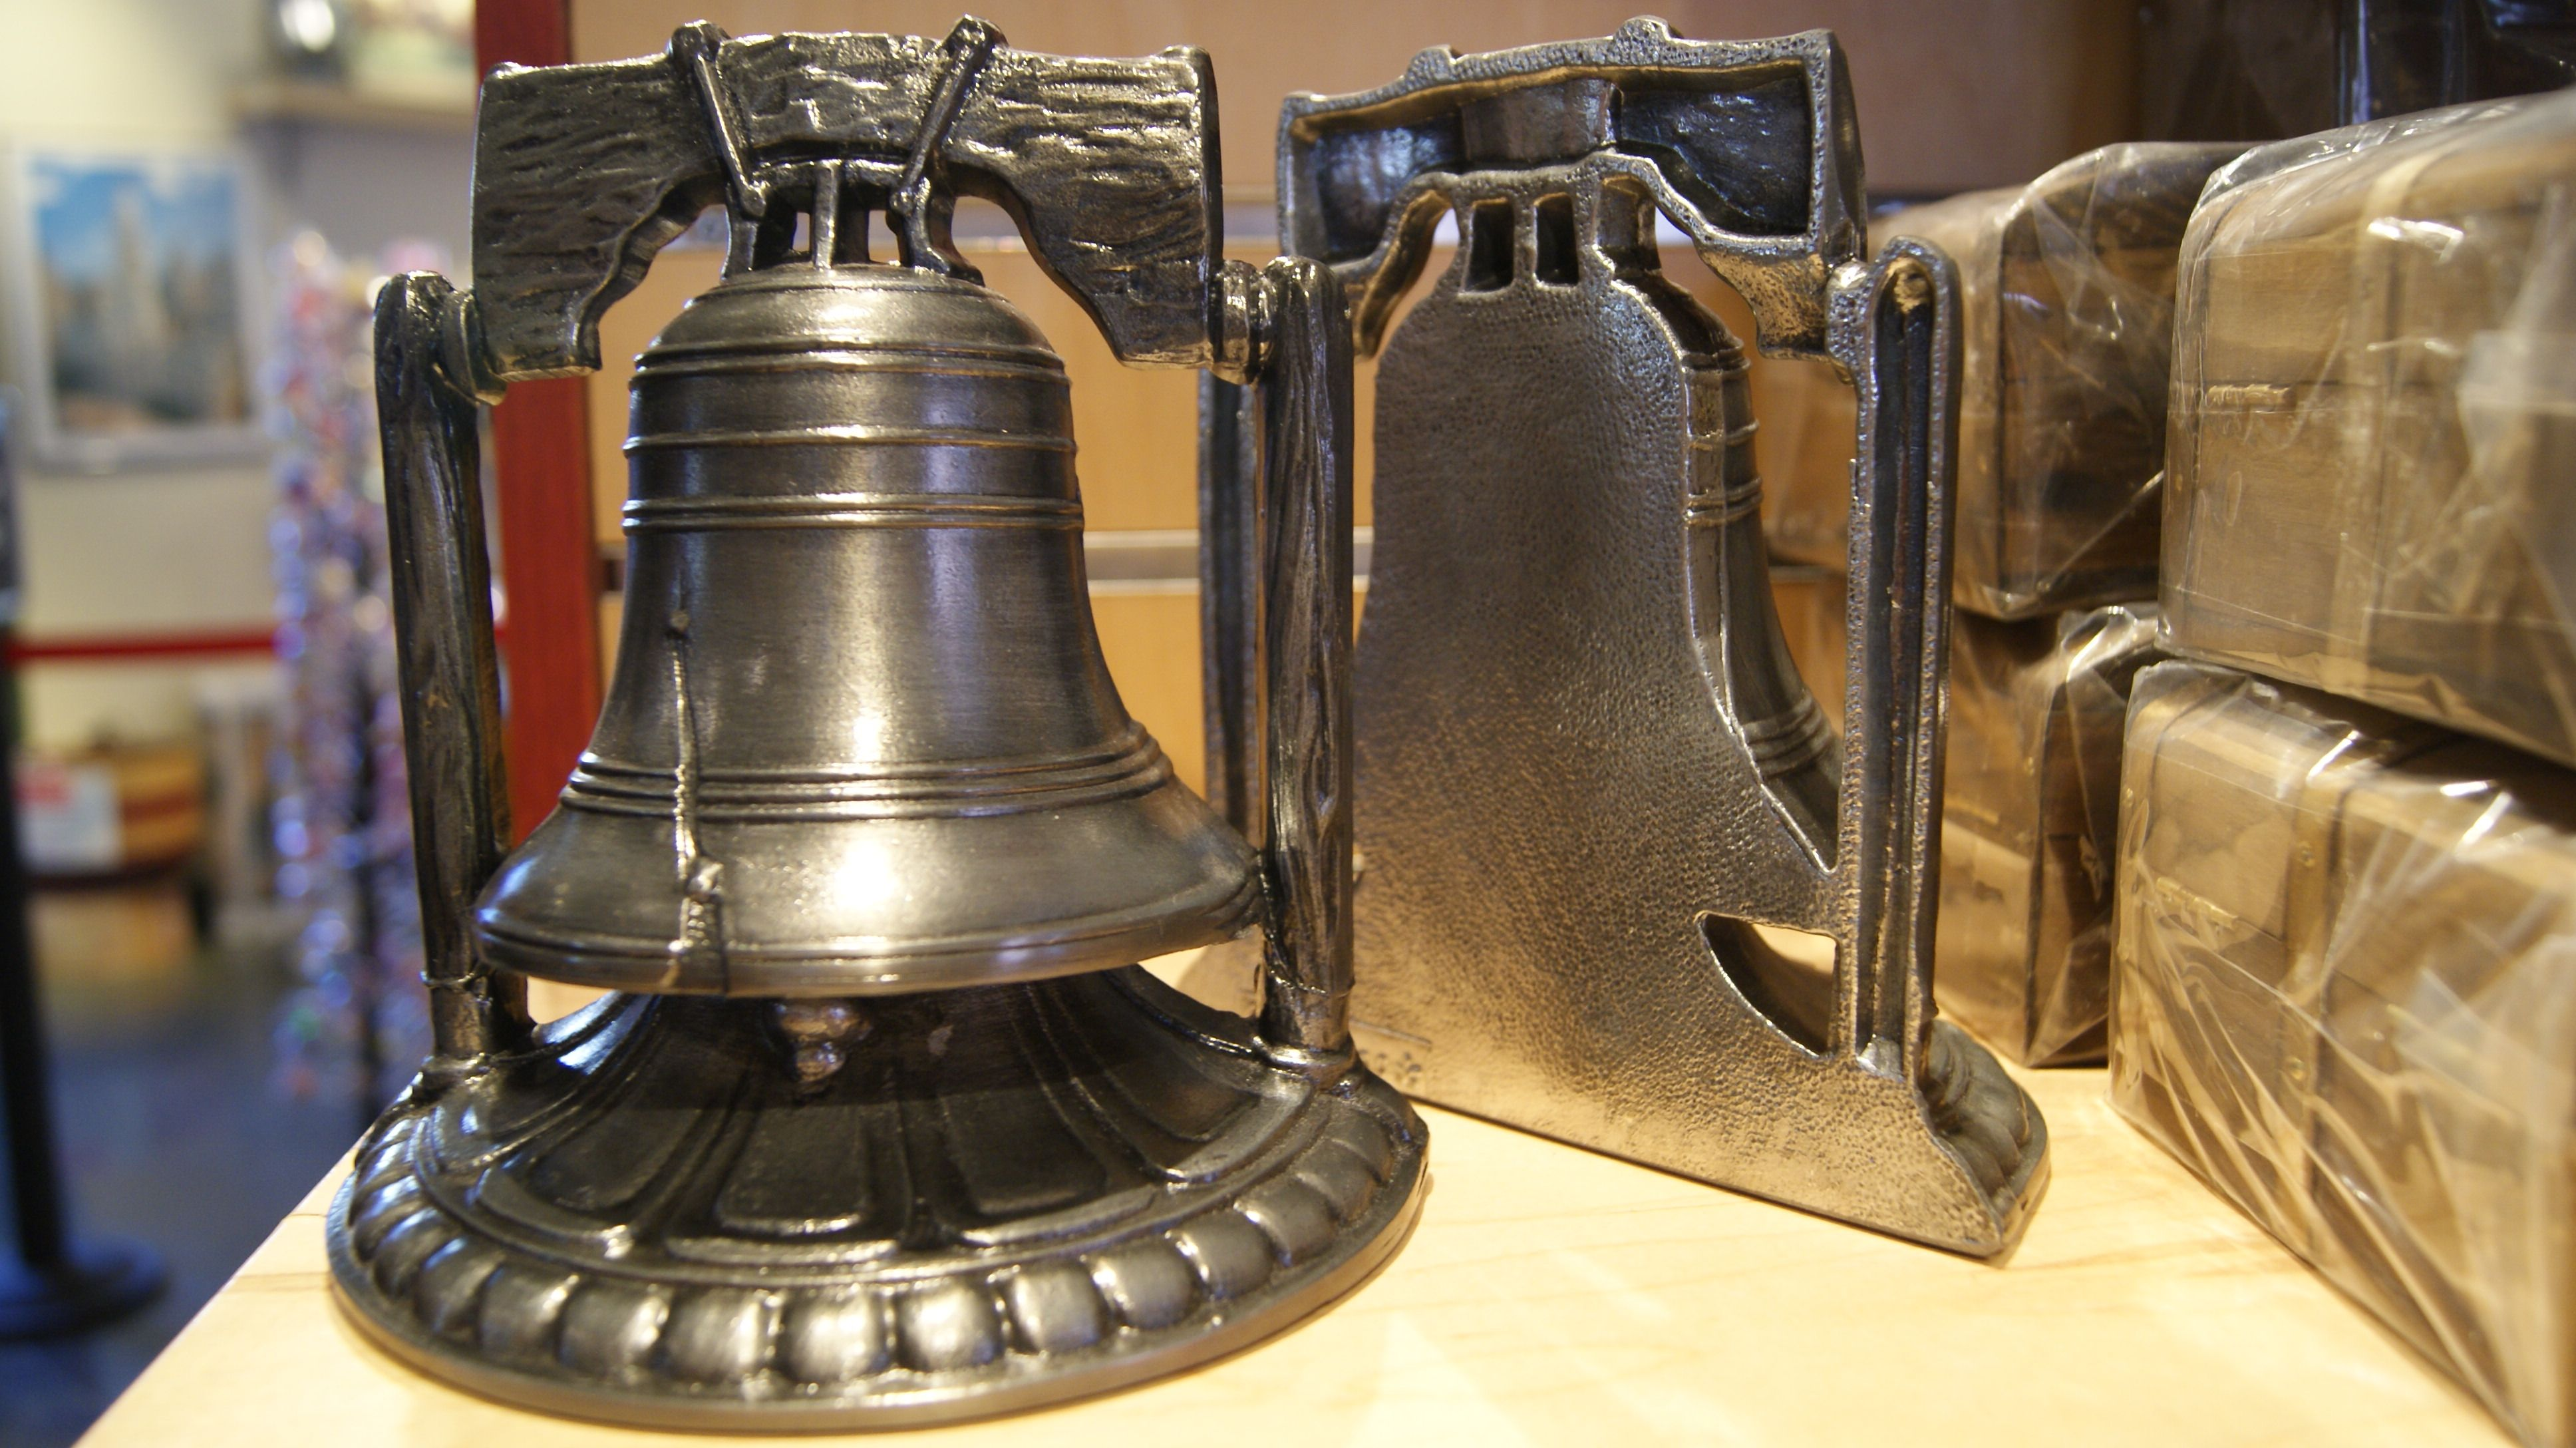 Now you can use the Liberty Bell as a bookend!